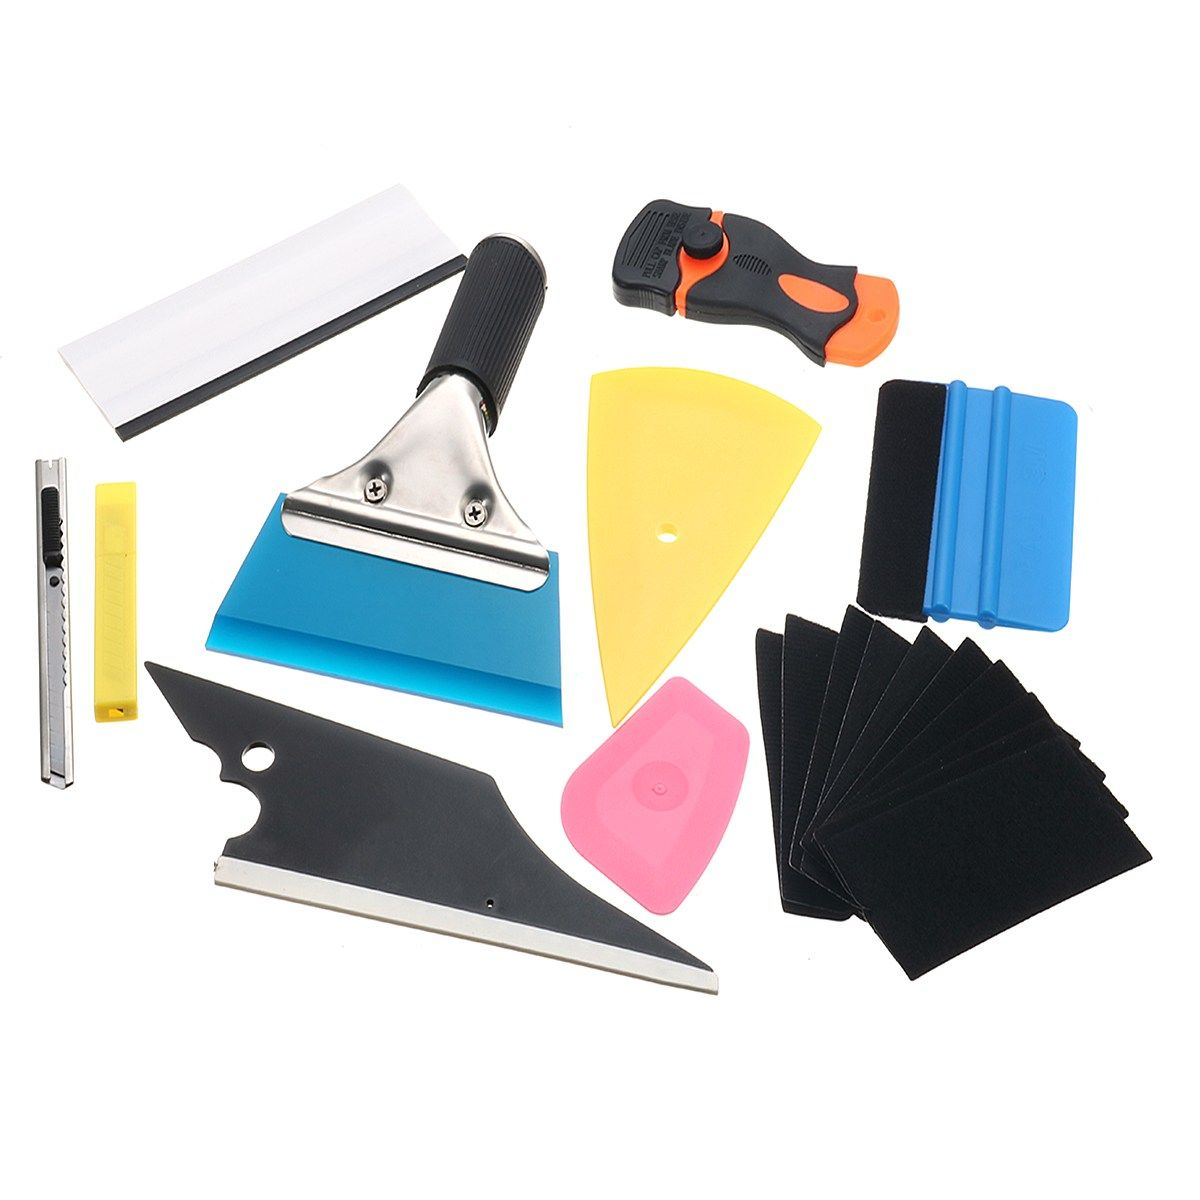 Professional 10pcs Window Tint Tools Car Wrapping Application DIY Kit Vinyl Sheet Squeegee